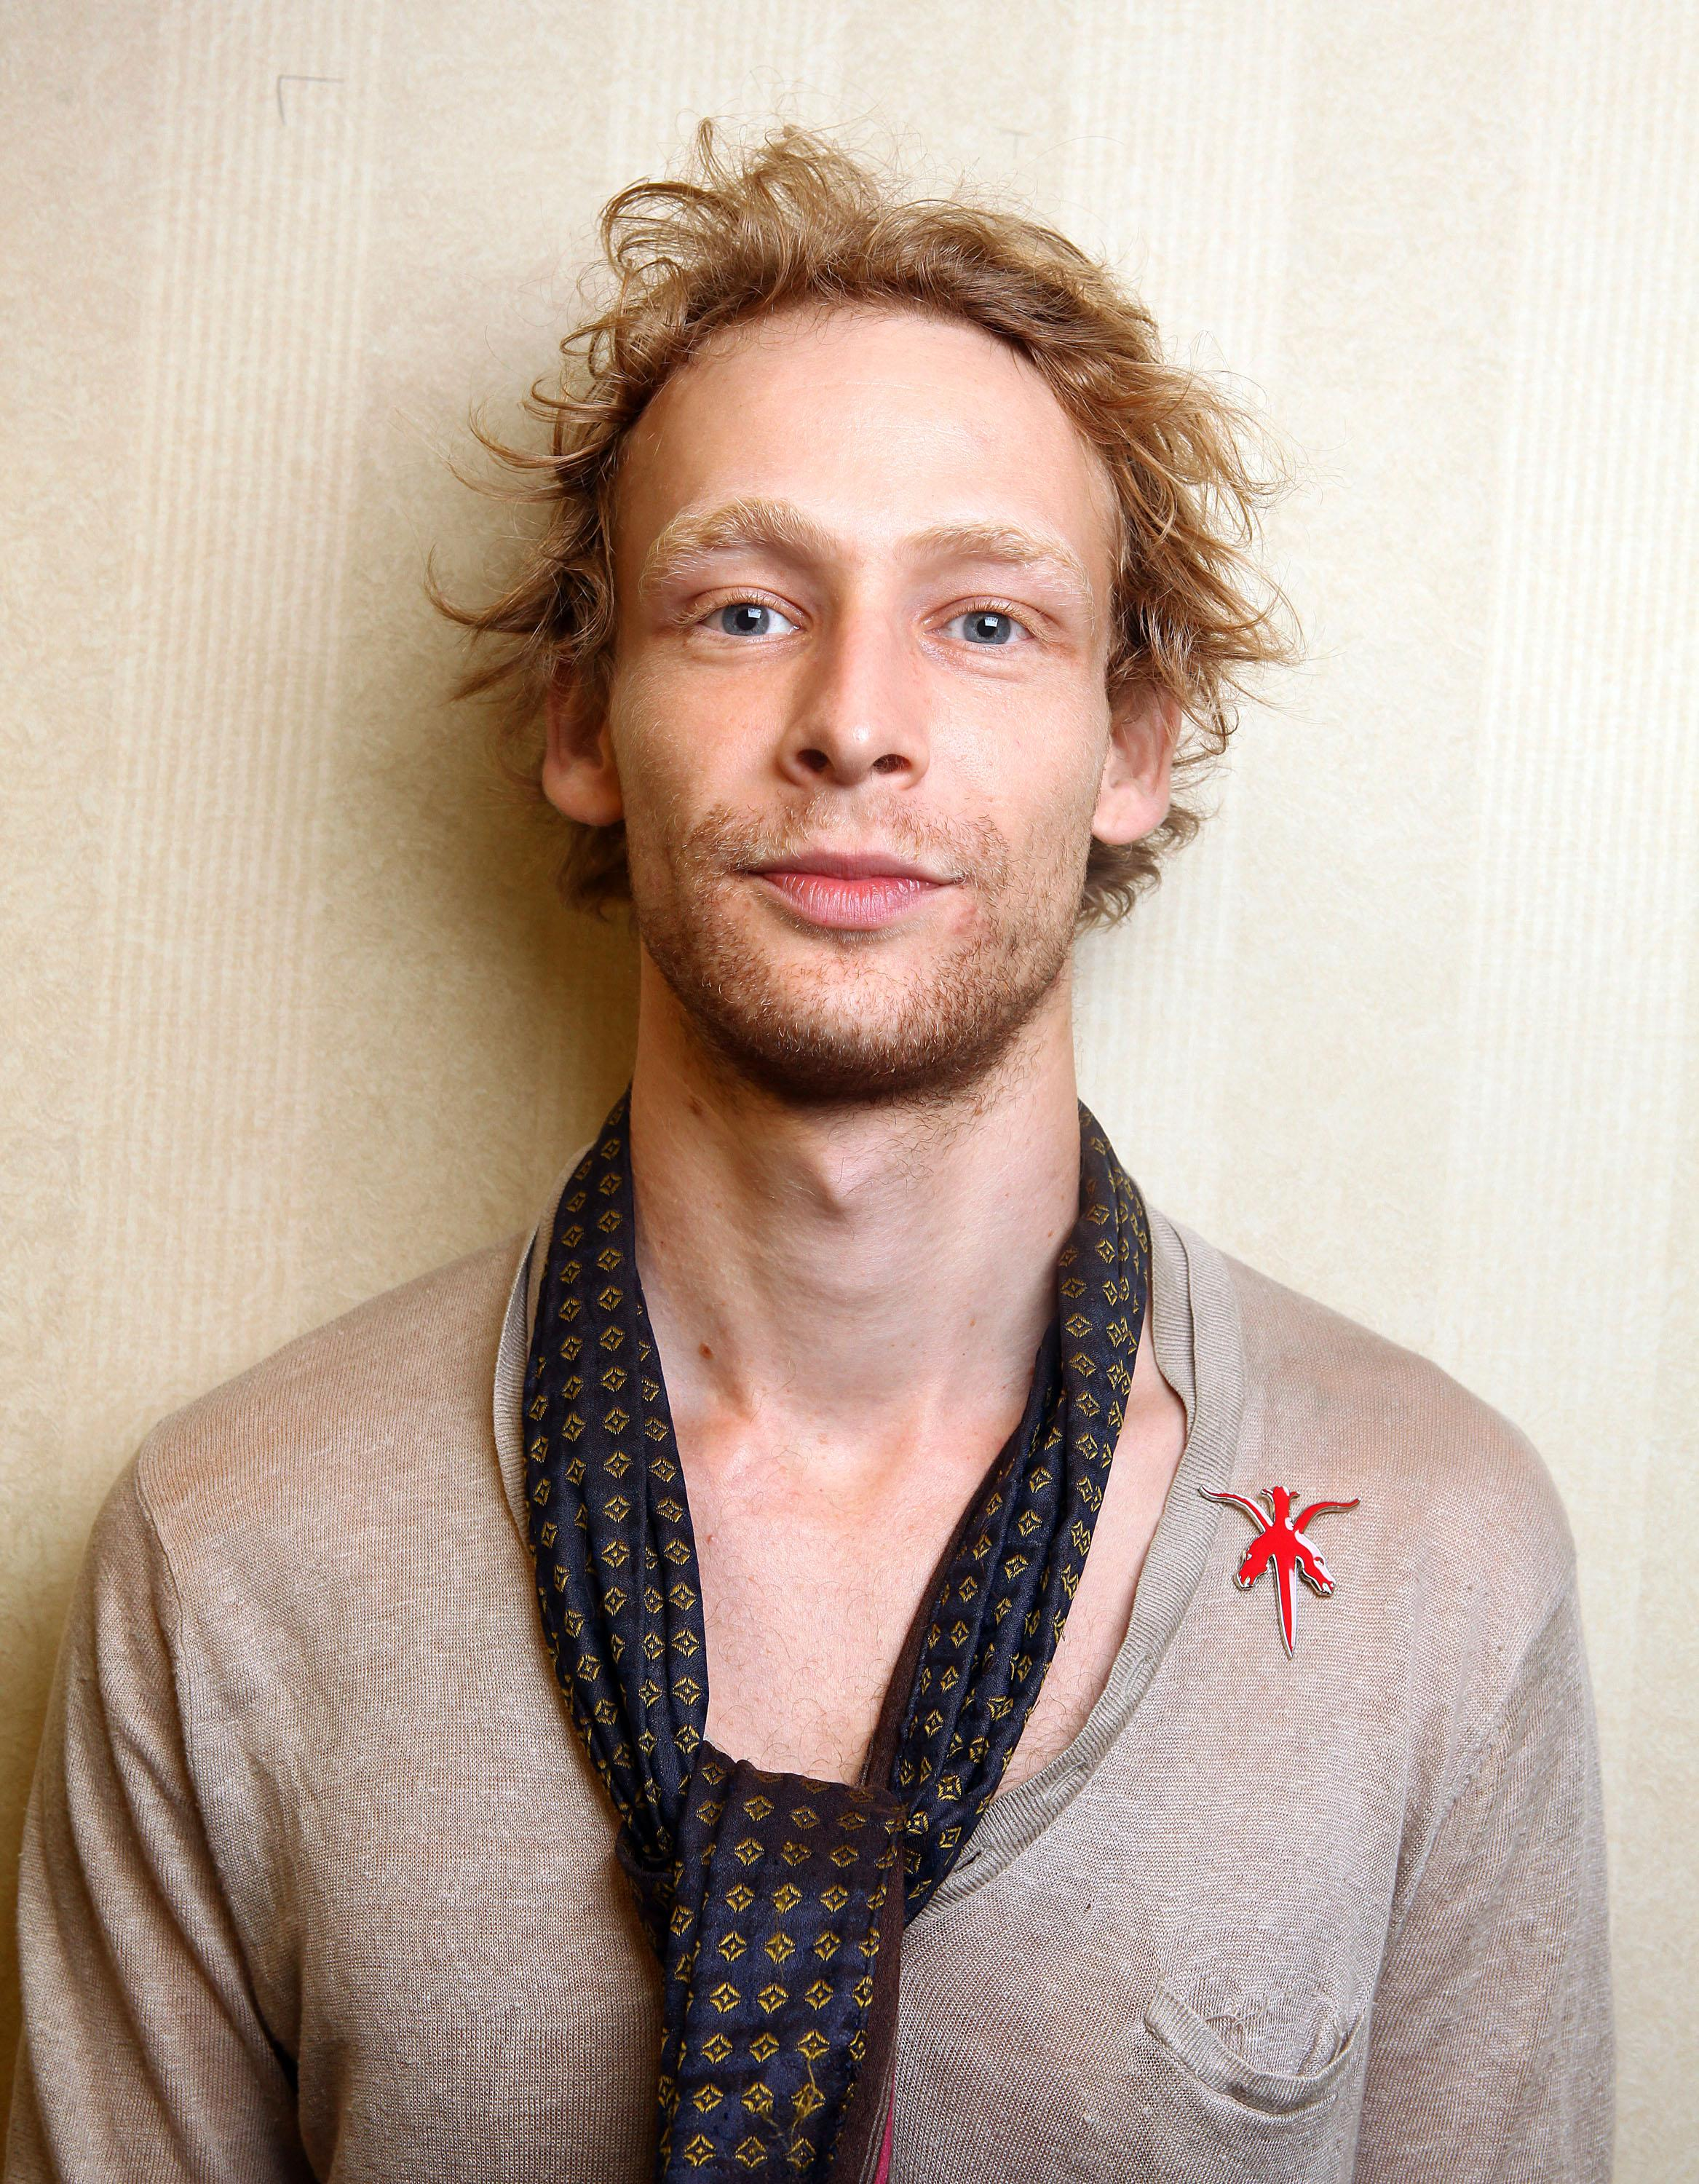 """FILE - This Sept. 14, 2011 file photo shows actor Johnny Lewis posing for a portrait during the 36th Toronto International Film Festival in Toronto, Canada. Authorities say Lewis fell to his death after killing an elderly Los Angeles woman. Lewis appeared in the FX television show """"Sons of Anarchy,"""" for two seasons. The woman killed is identified as 81-year-old Catherine Davis. (AP Photo/Carlo Allegri, file)"""